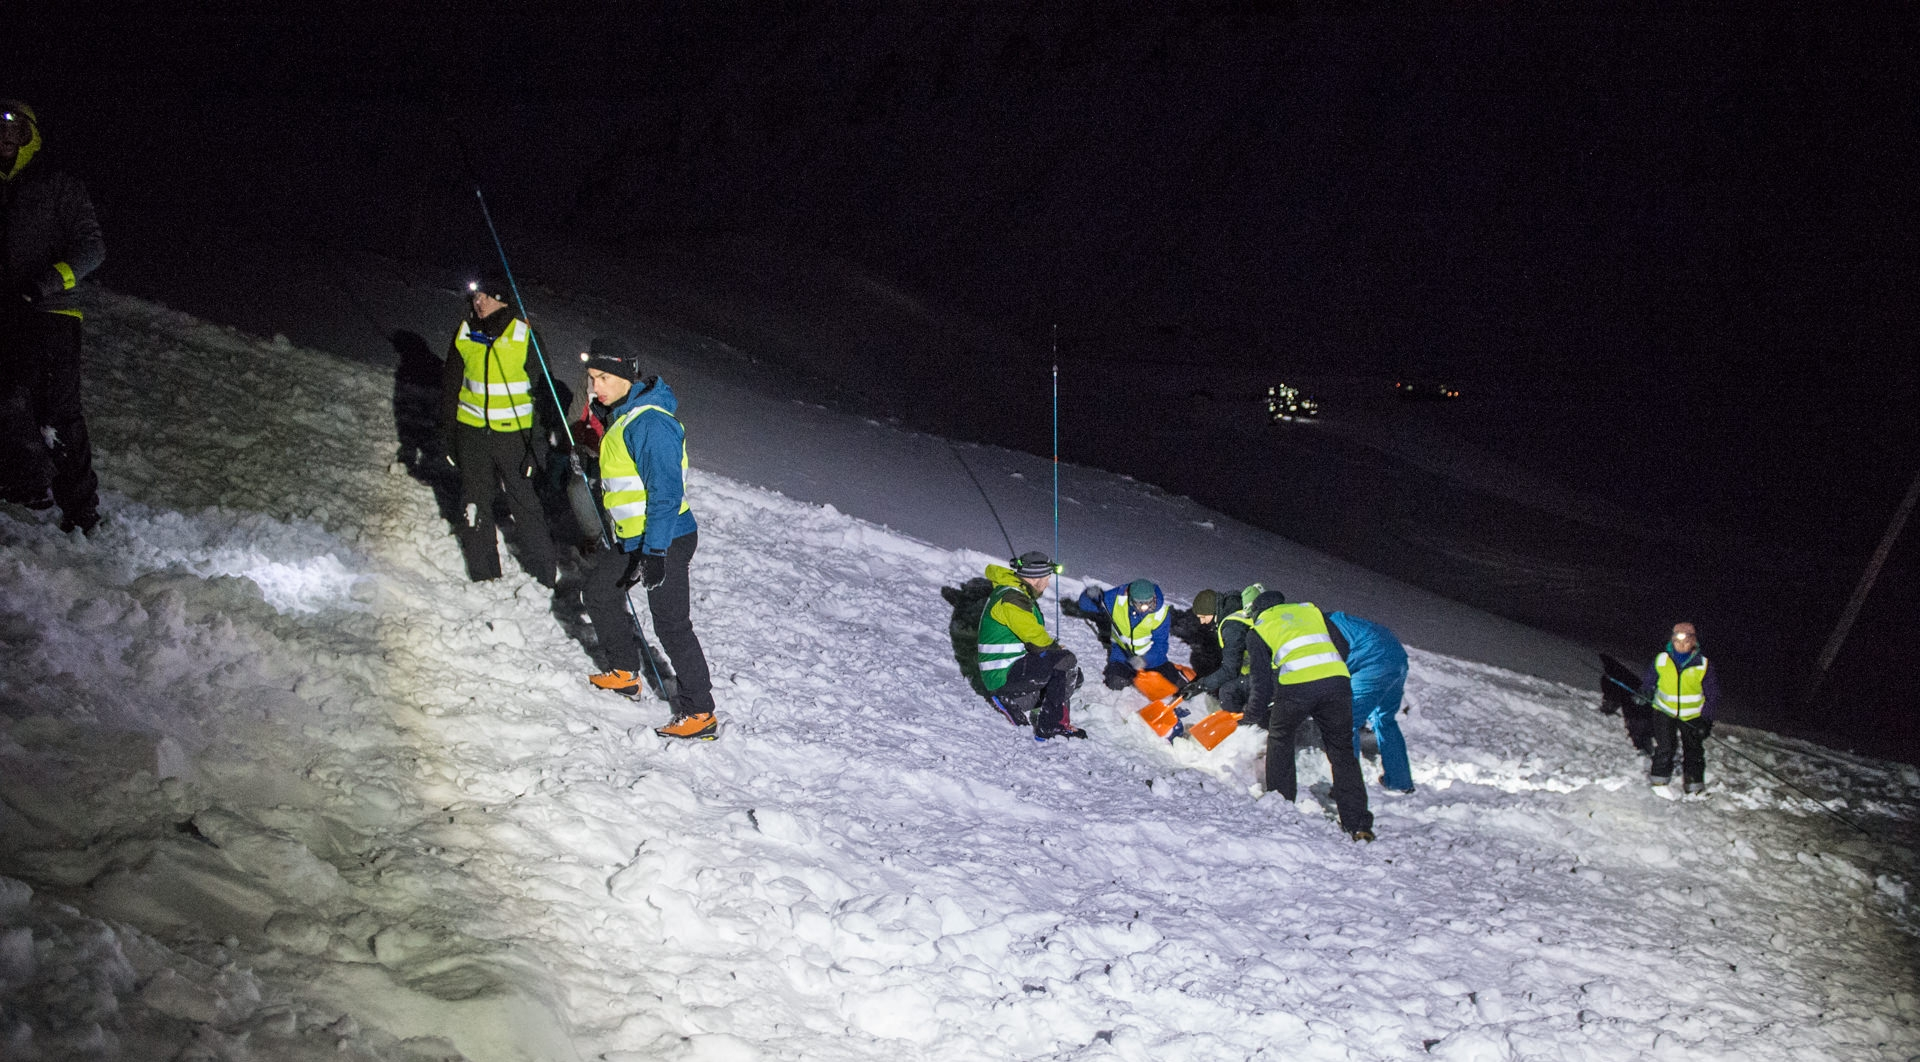 """UNIS students digging through an """"avalanche"""" during the UNIS winter field safety course. Photo: Frede Lamo / UNIS"""